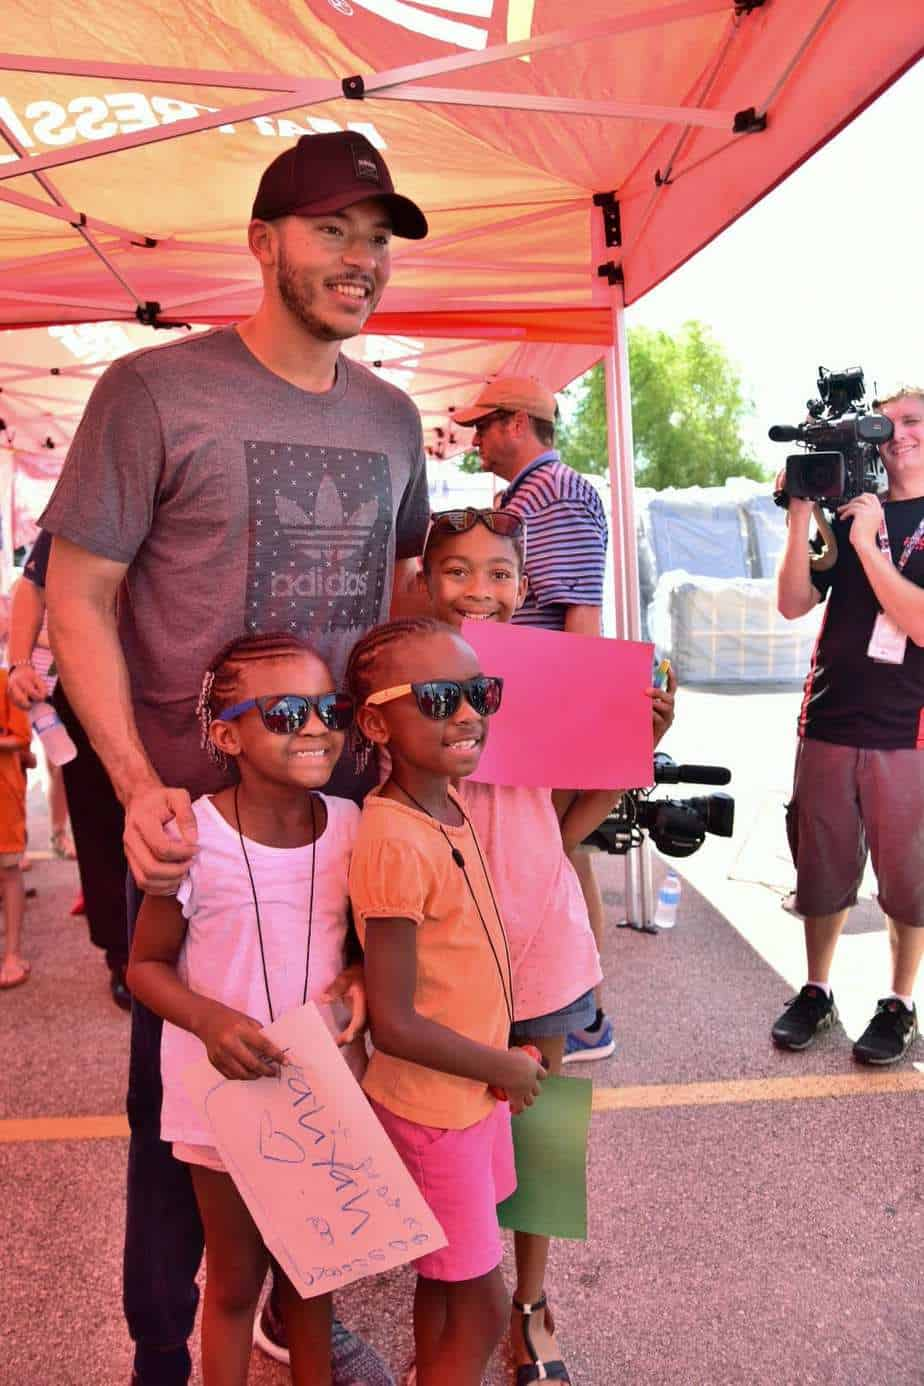 Carlos Correa Amp Mattress Firm Team Up To Donate 500 Beds